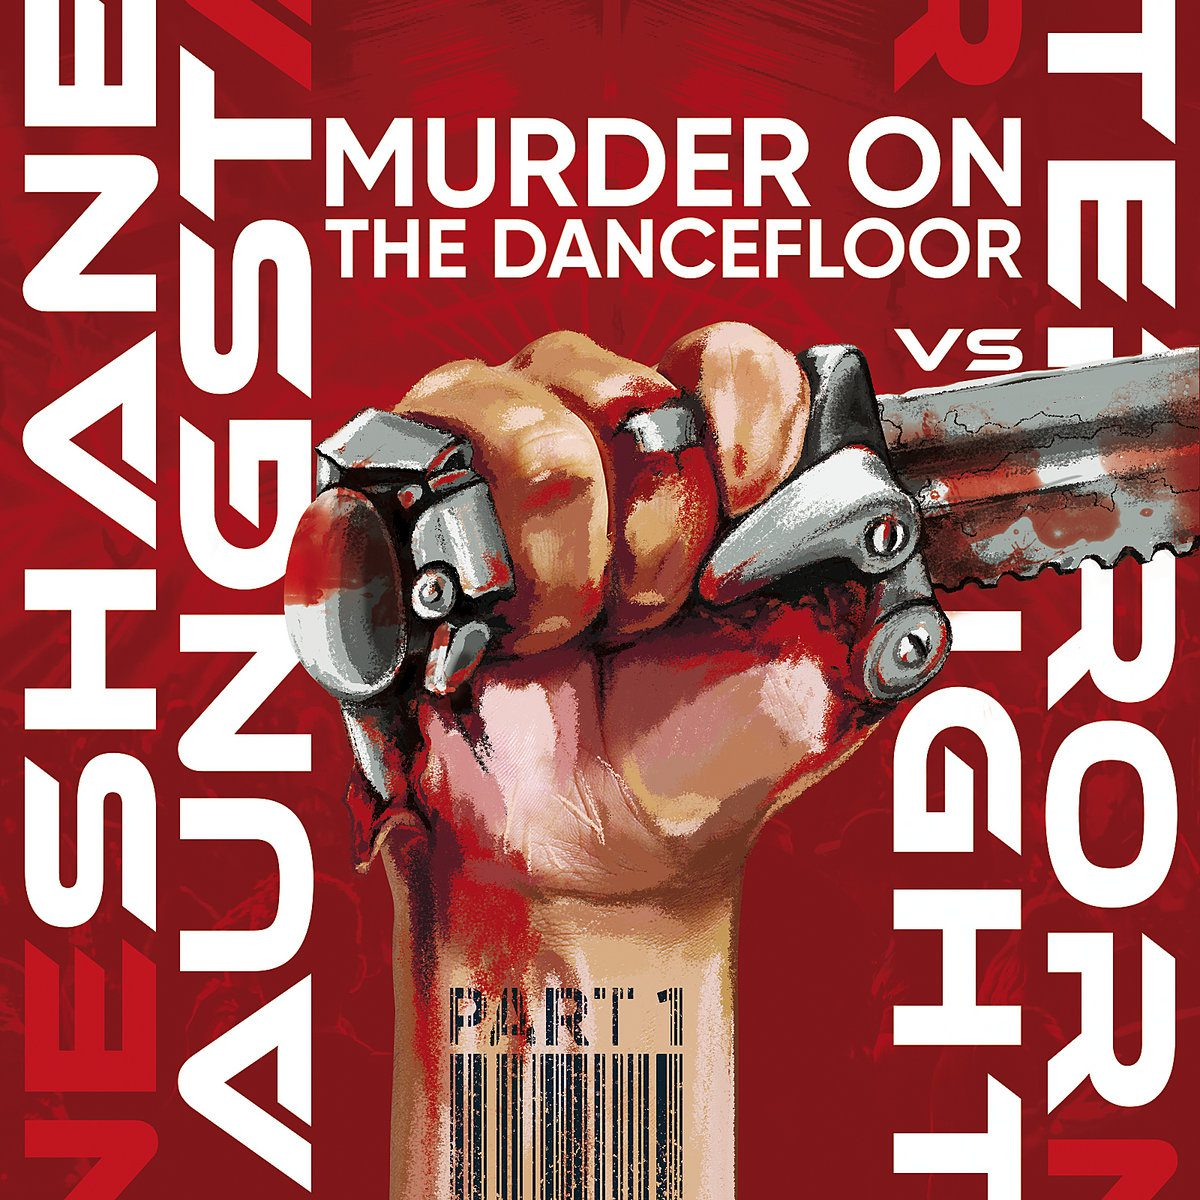 Shane Aungst releases yet another mega mix: 'Murder On The Dancefloor' in collaboration with Insane Records and the radio show Terror Night